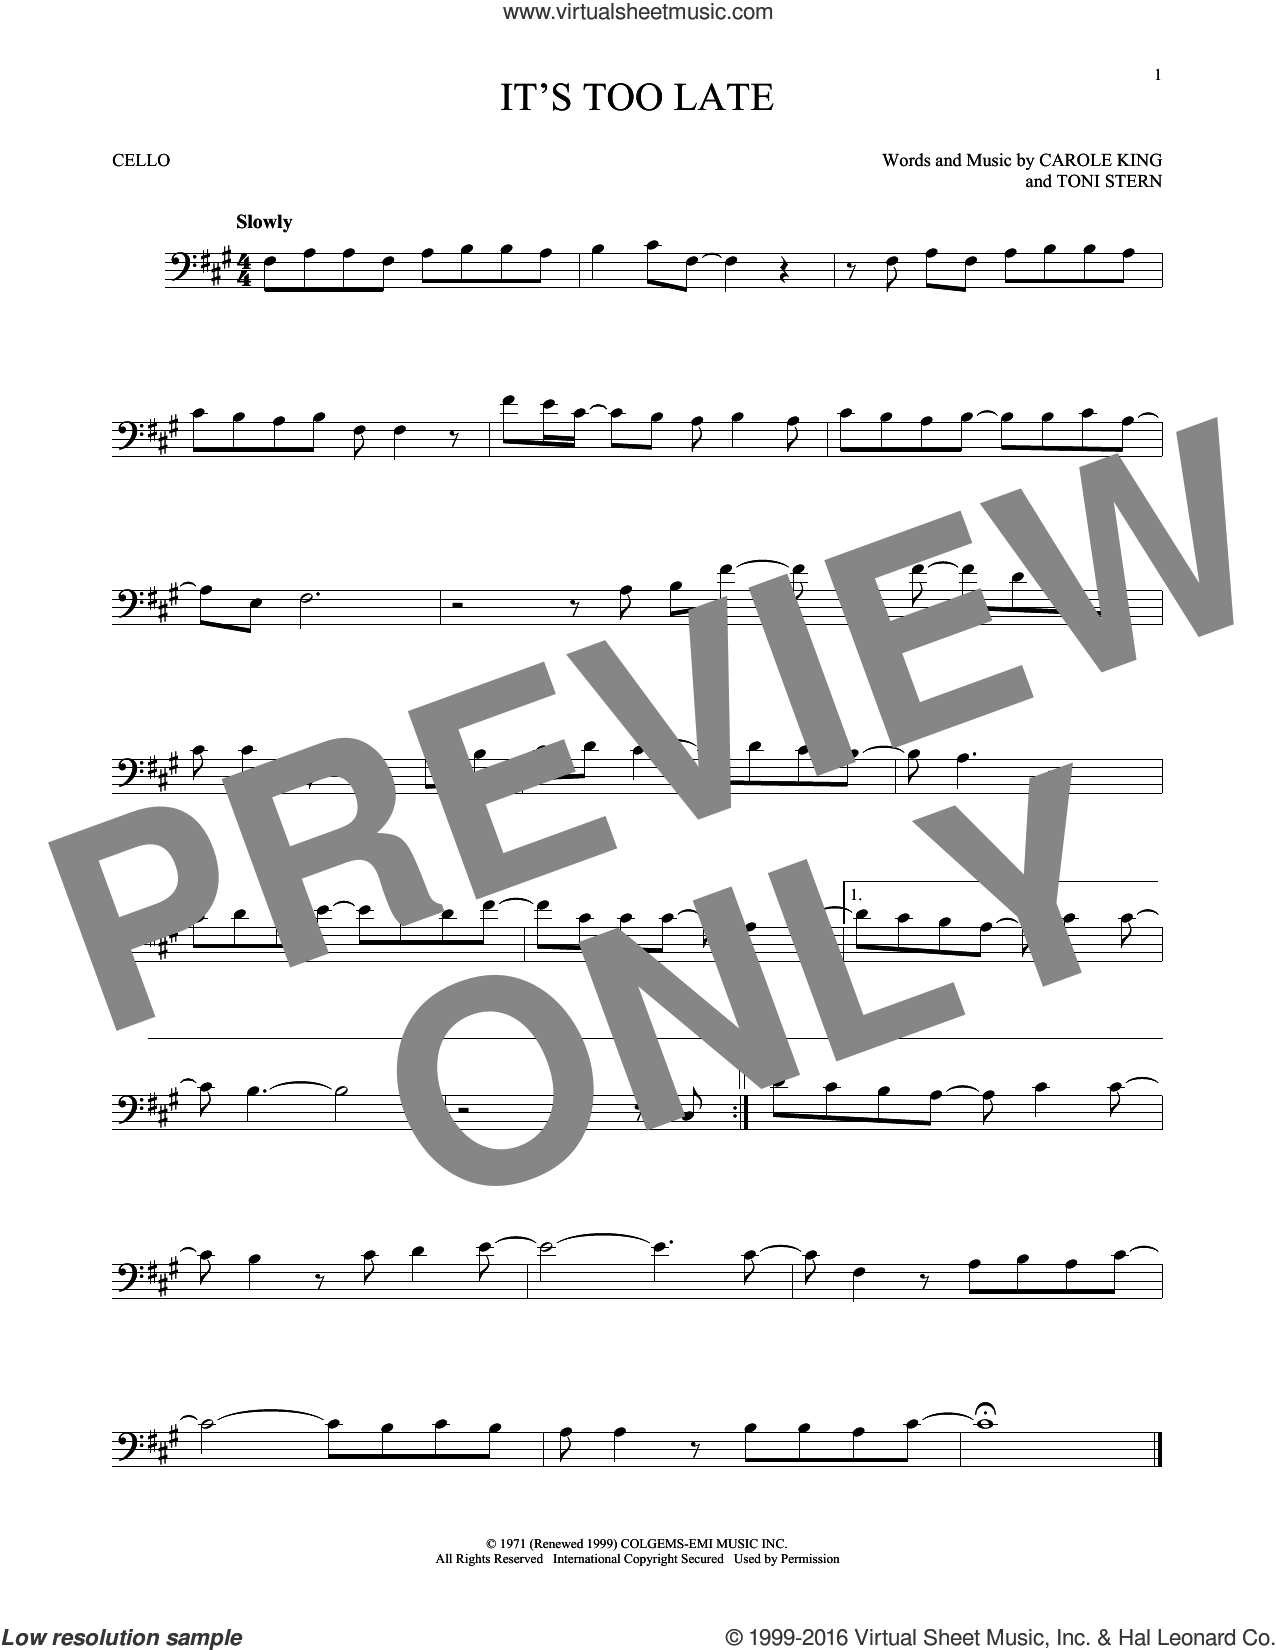 It's Too Late sheet music for cello solo by Carole King, Gloria Estefan and Toni Stern, intermediate